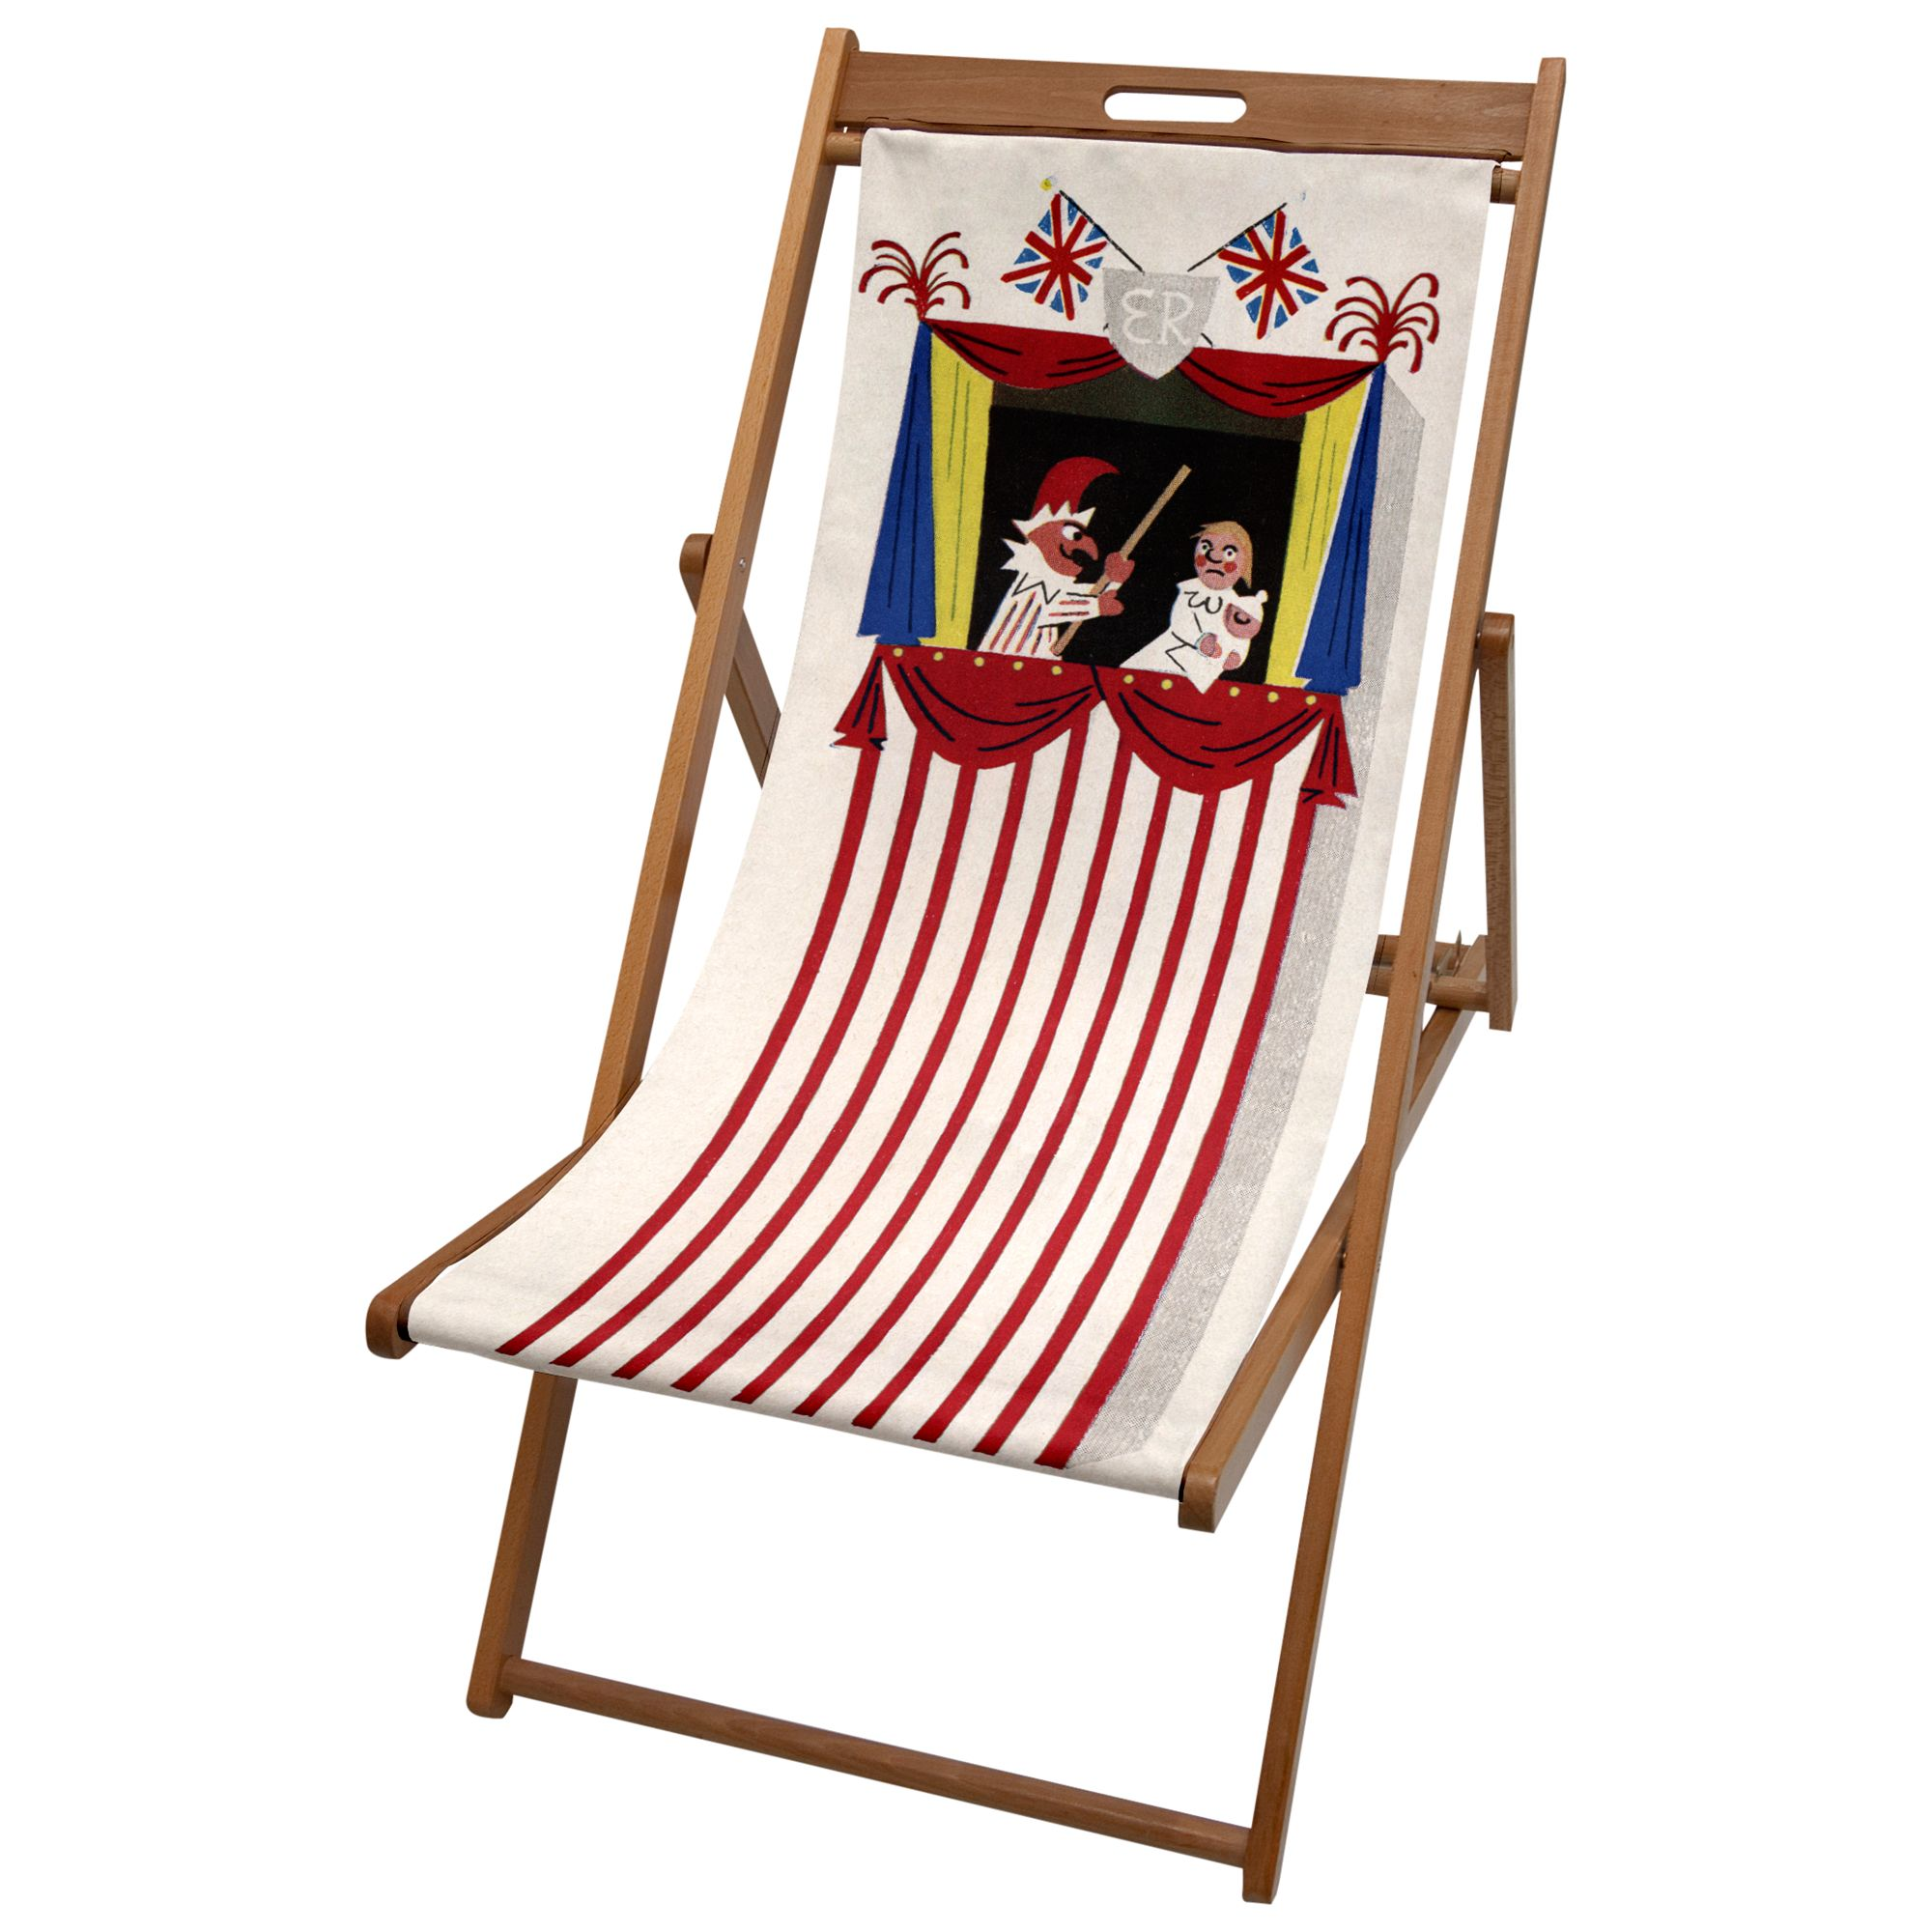 Hemingway Design Punch and Judy Deck Chair